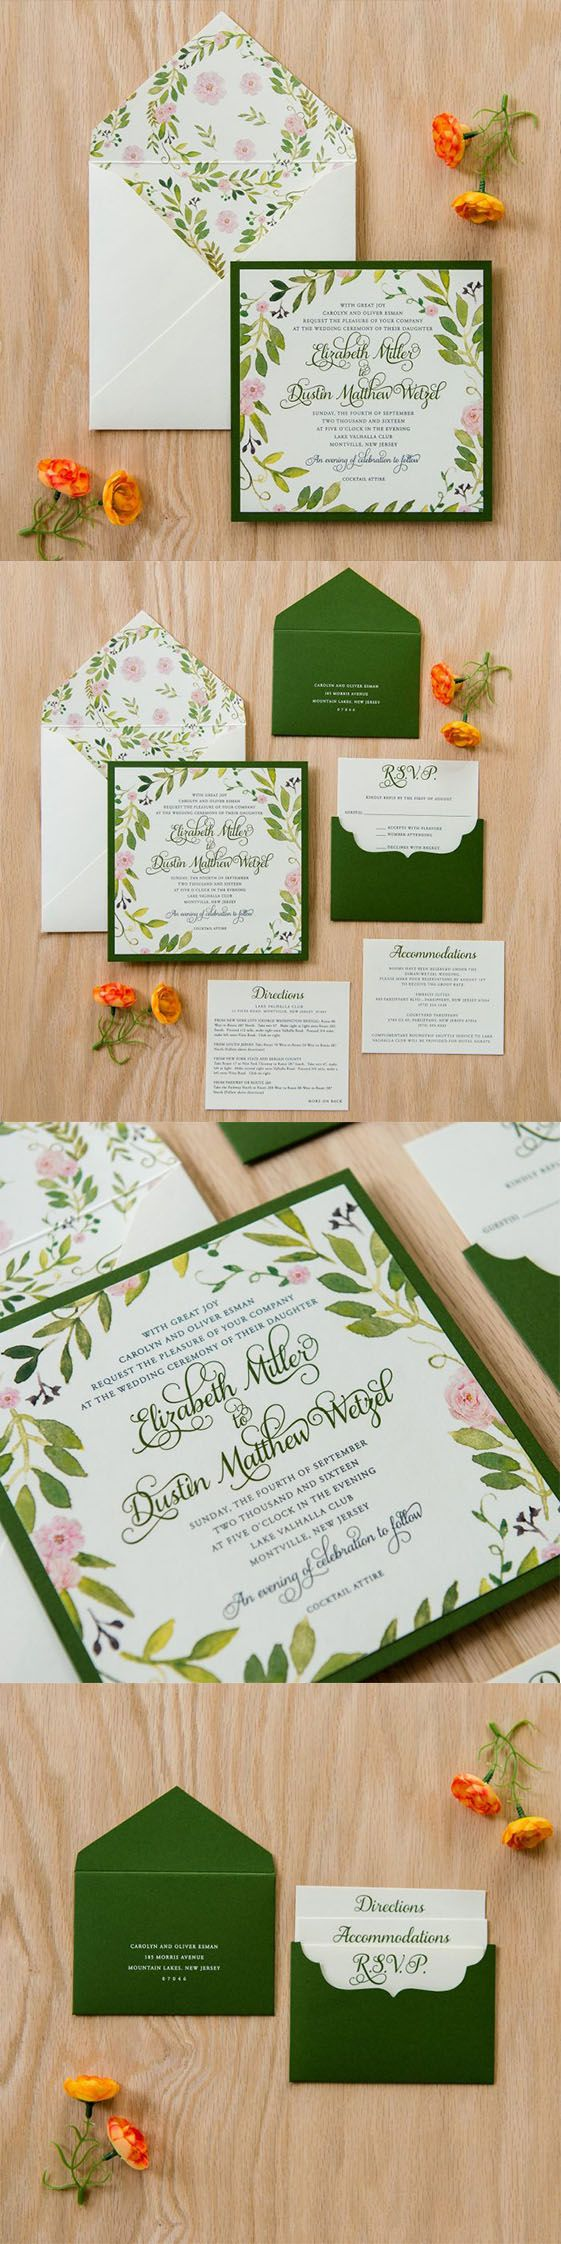 Rachel Wedding Invitation Accommodations Card Invitation Suite